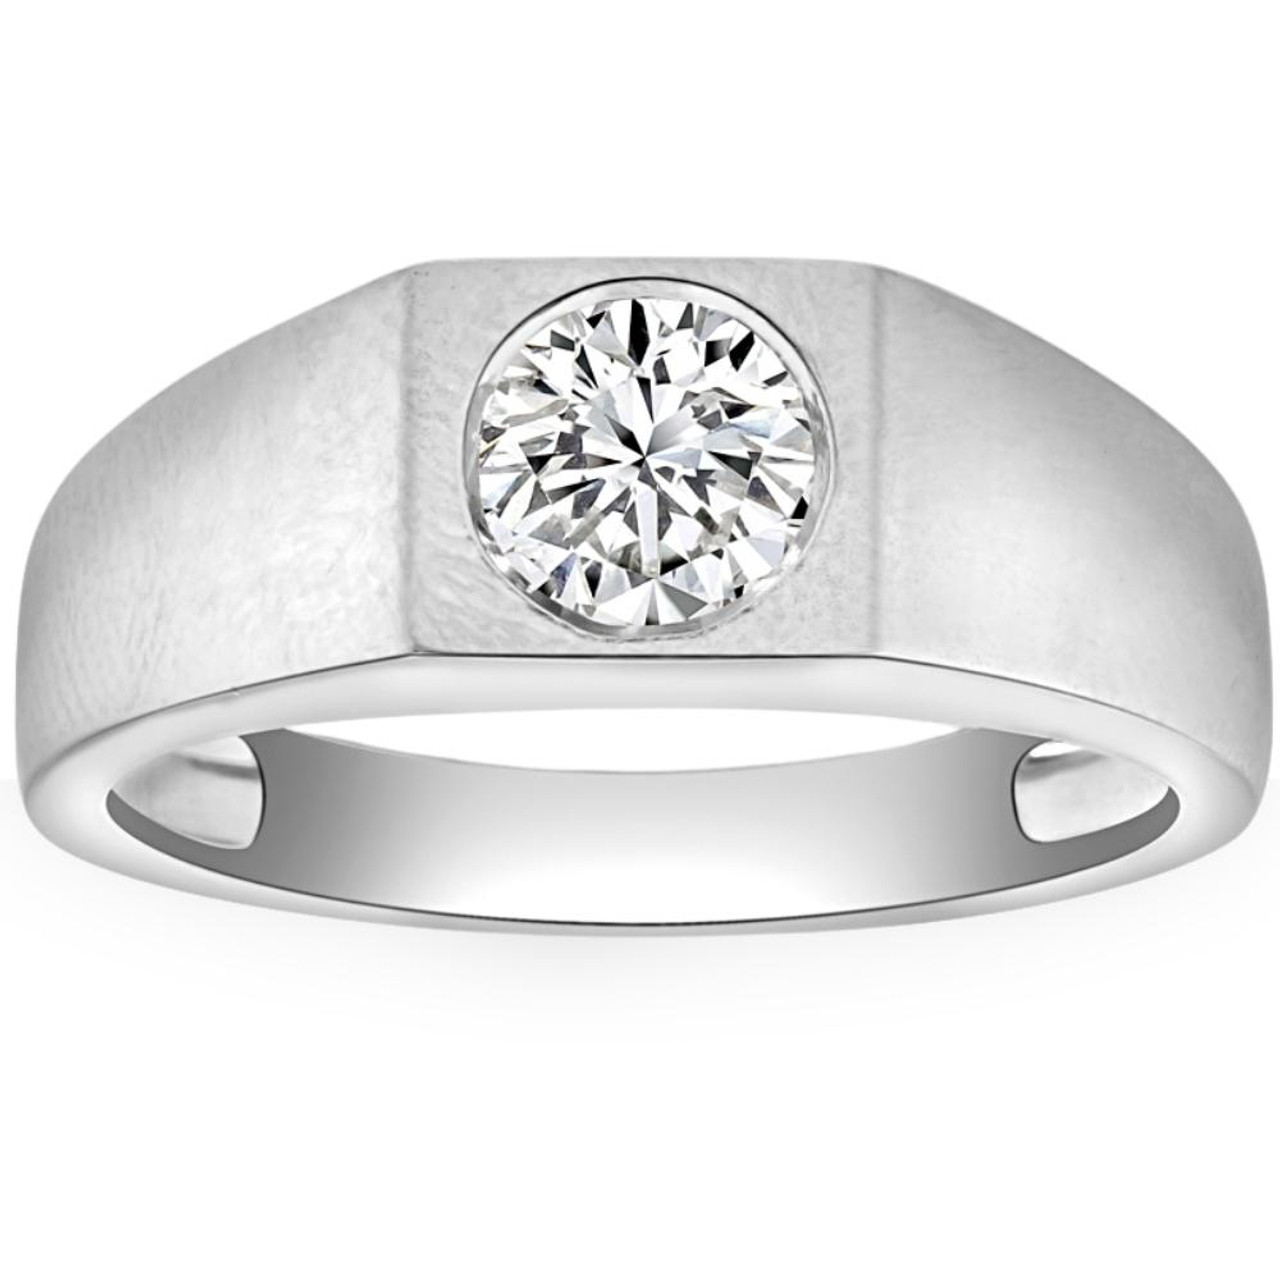 1 Ct Solitaire Diamond Mens Wedding Ring 14k White Or Yellow Gold